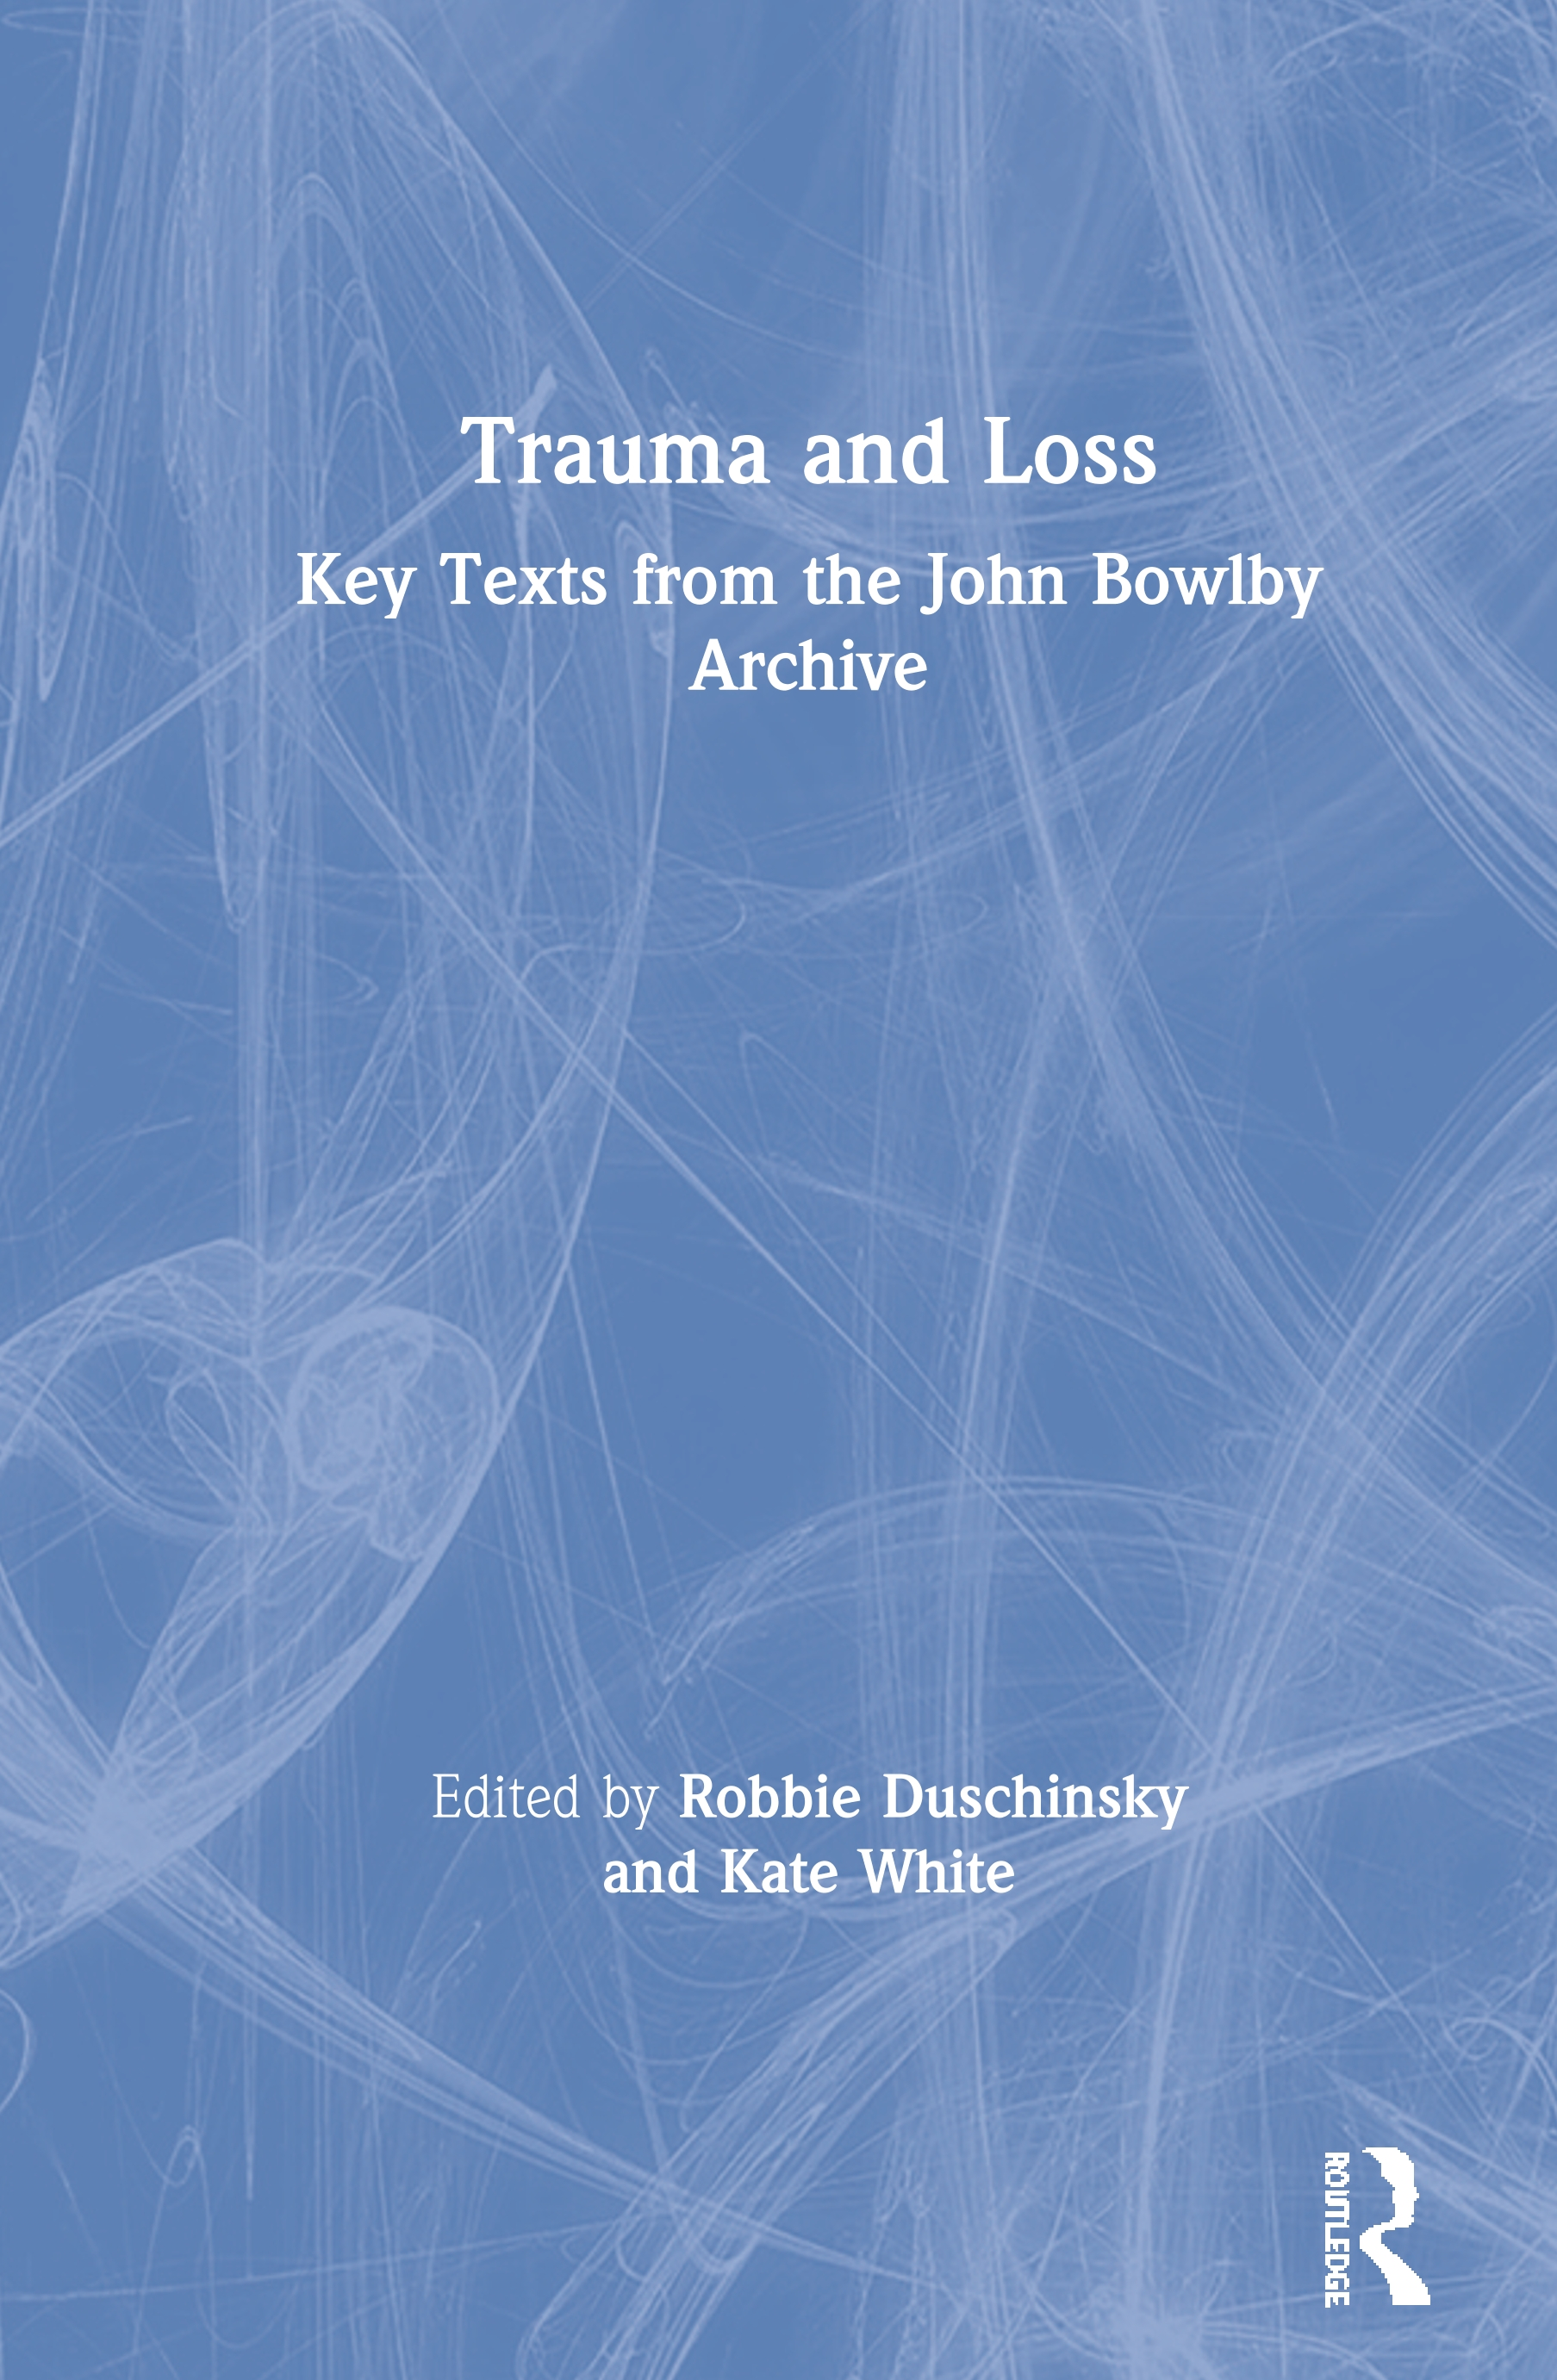 Trauma and Loss: Key Texts from the John Bowlby Archive book cover